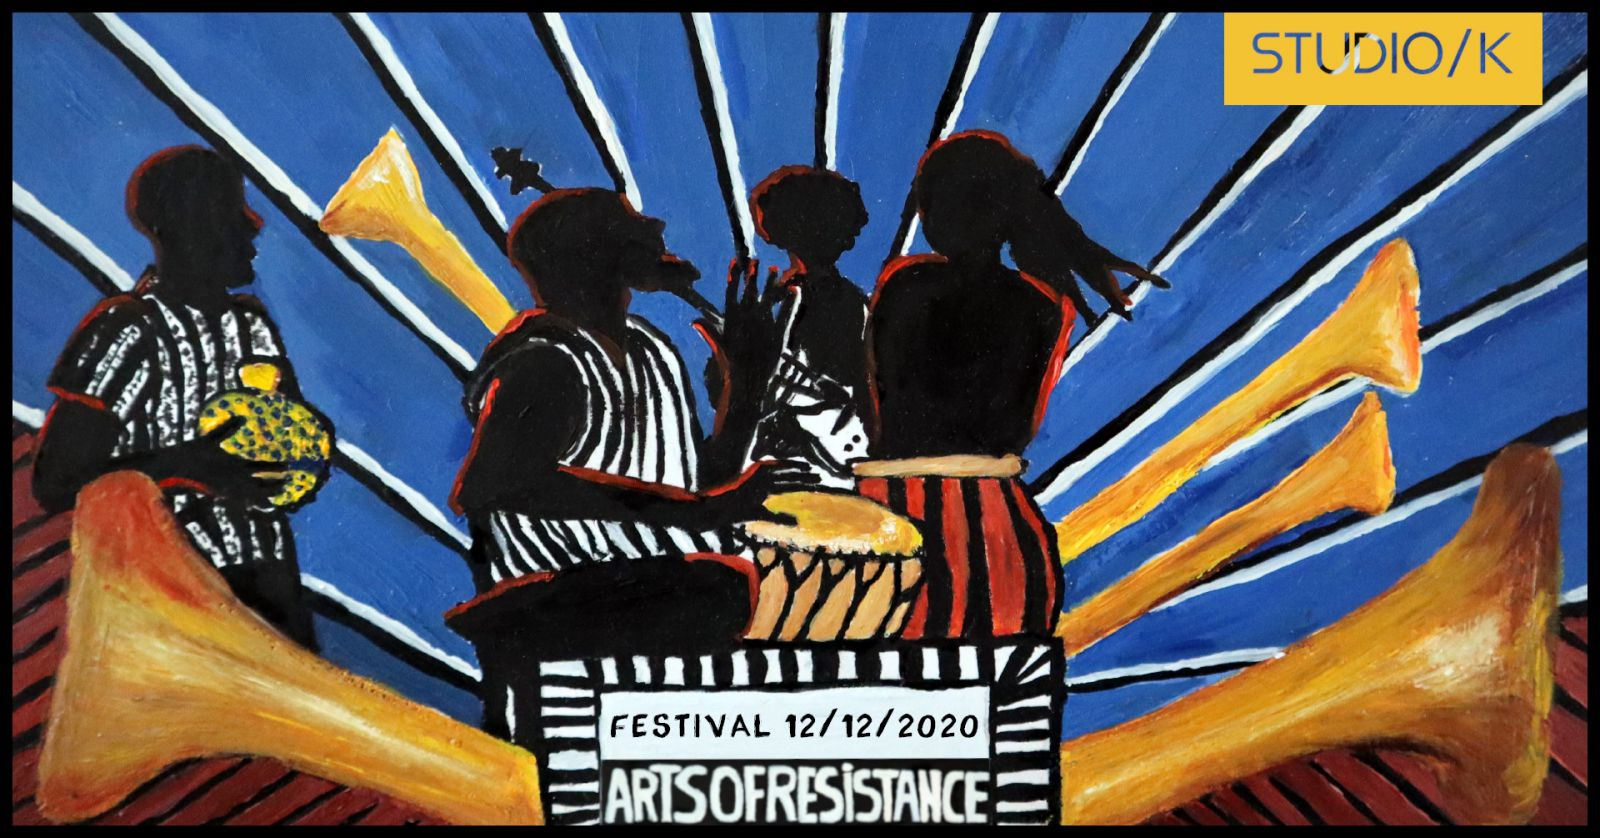 Arts of Resistance / Festival Reclaiming the City